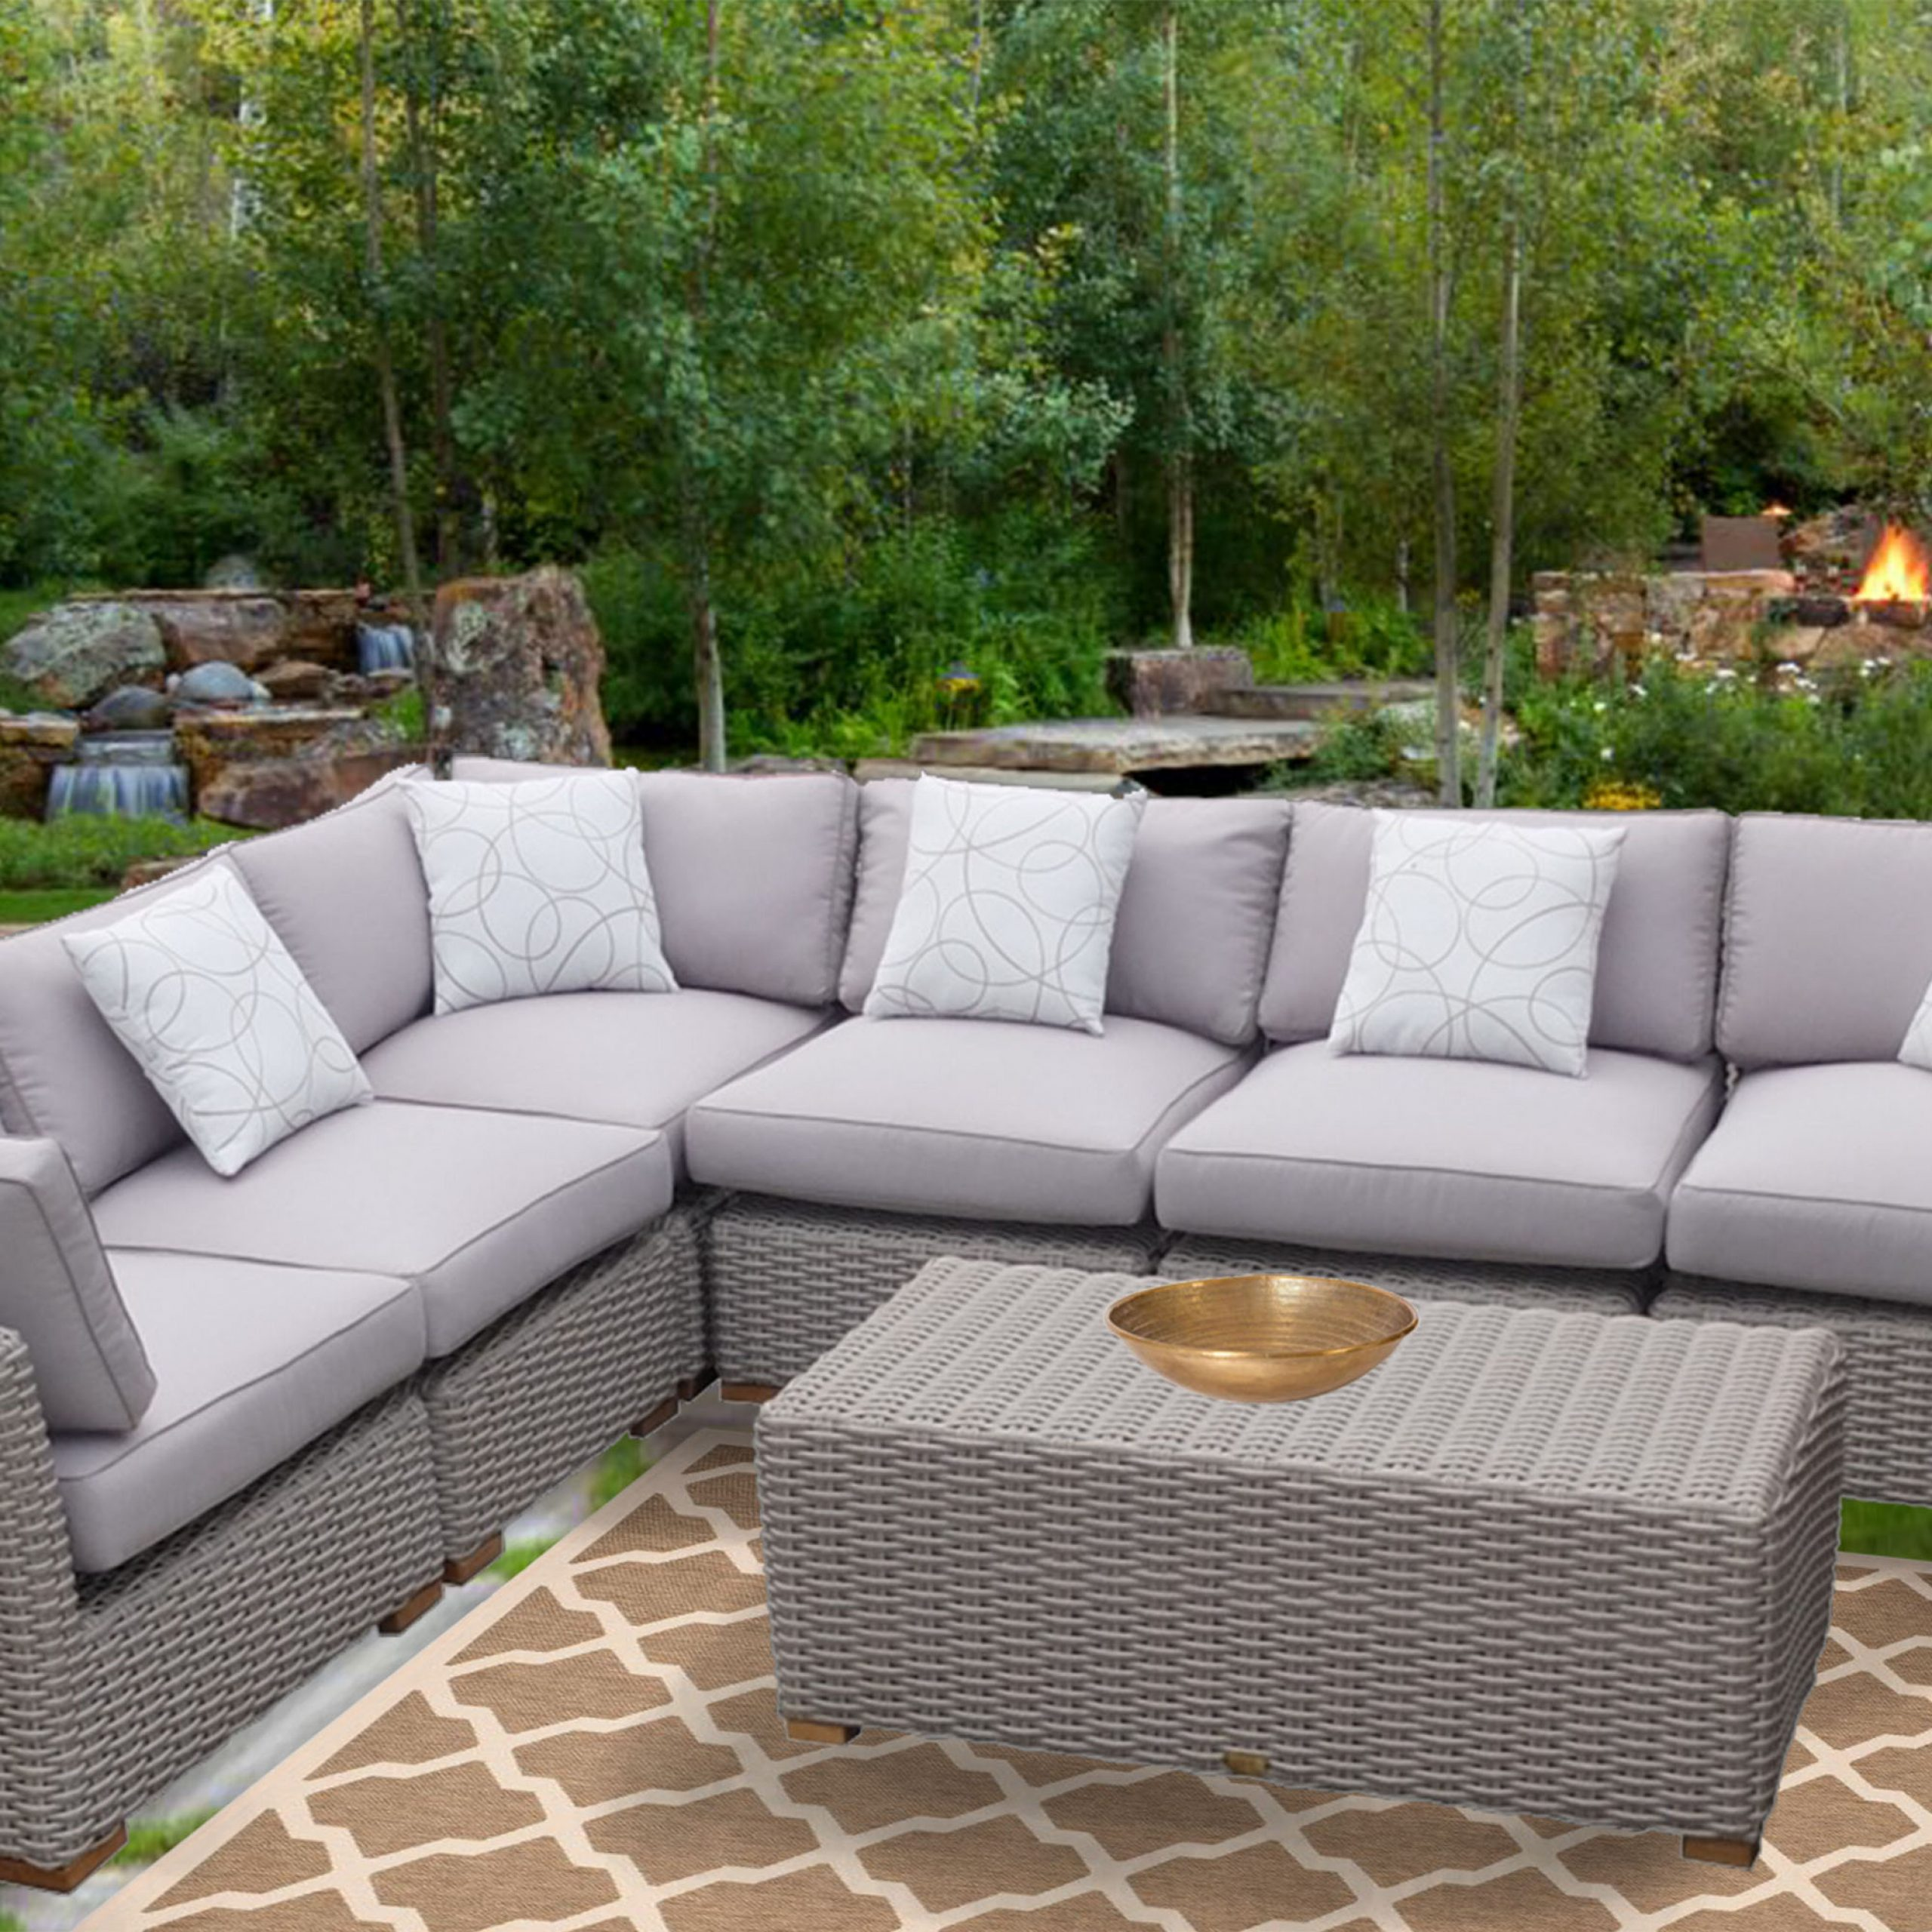 Well Liked Letona Patio Sectionals With Cushions In Dutil 7 Piece Rattan Sunbrella Sectional Seating Group With Cushions (View 11 of 25)